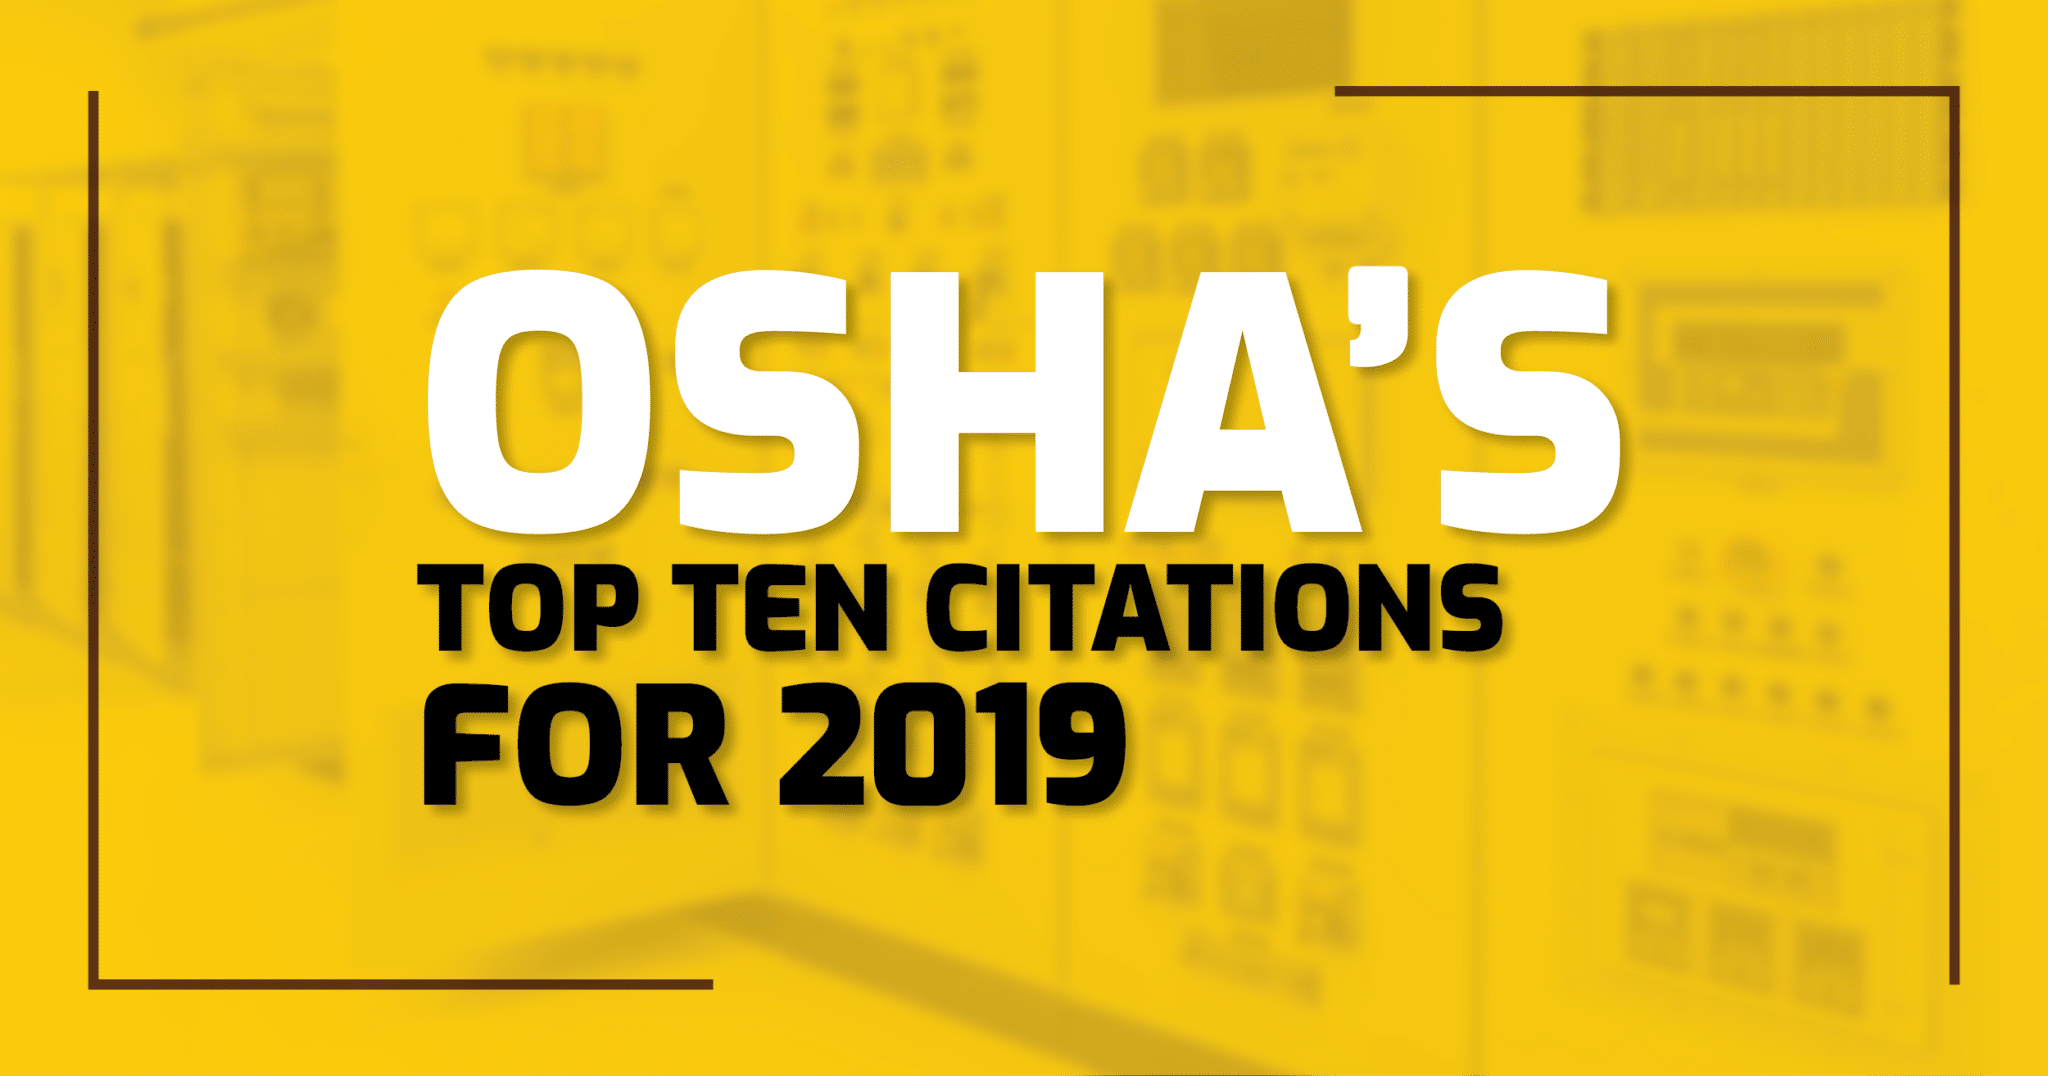 OSHA Top Ten List for 2019